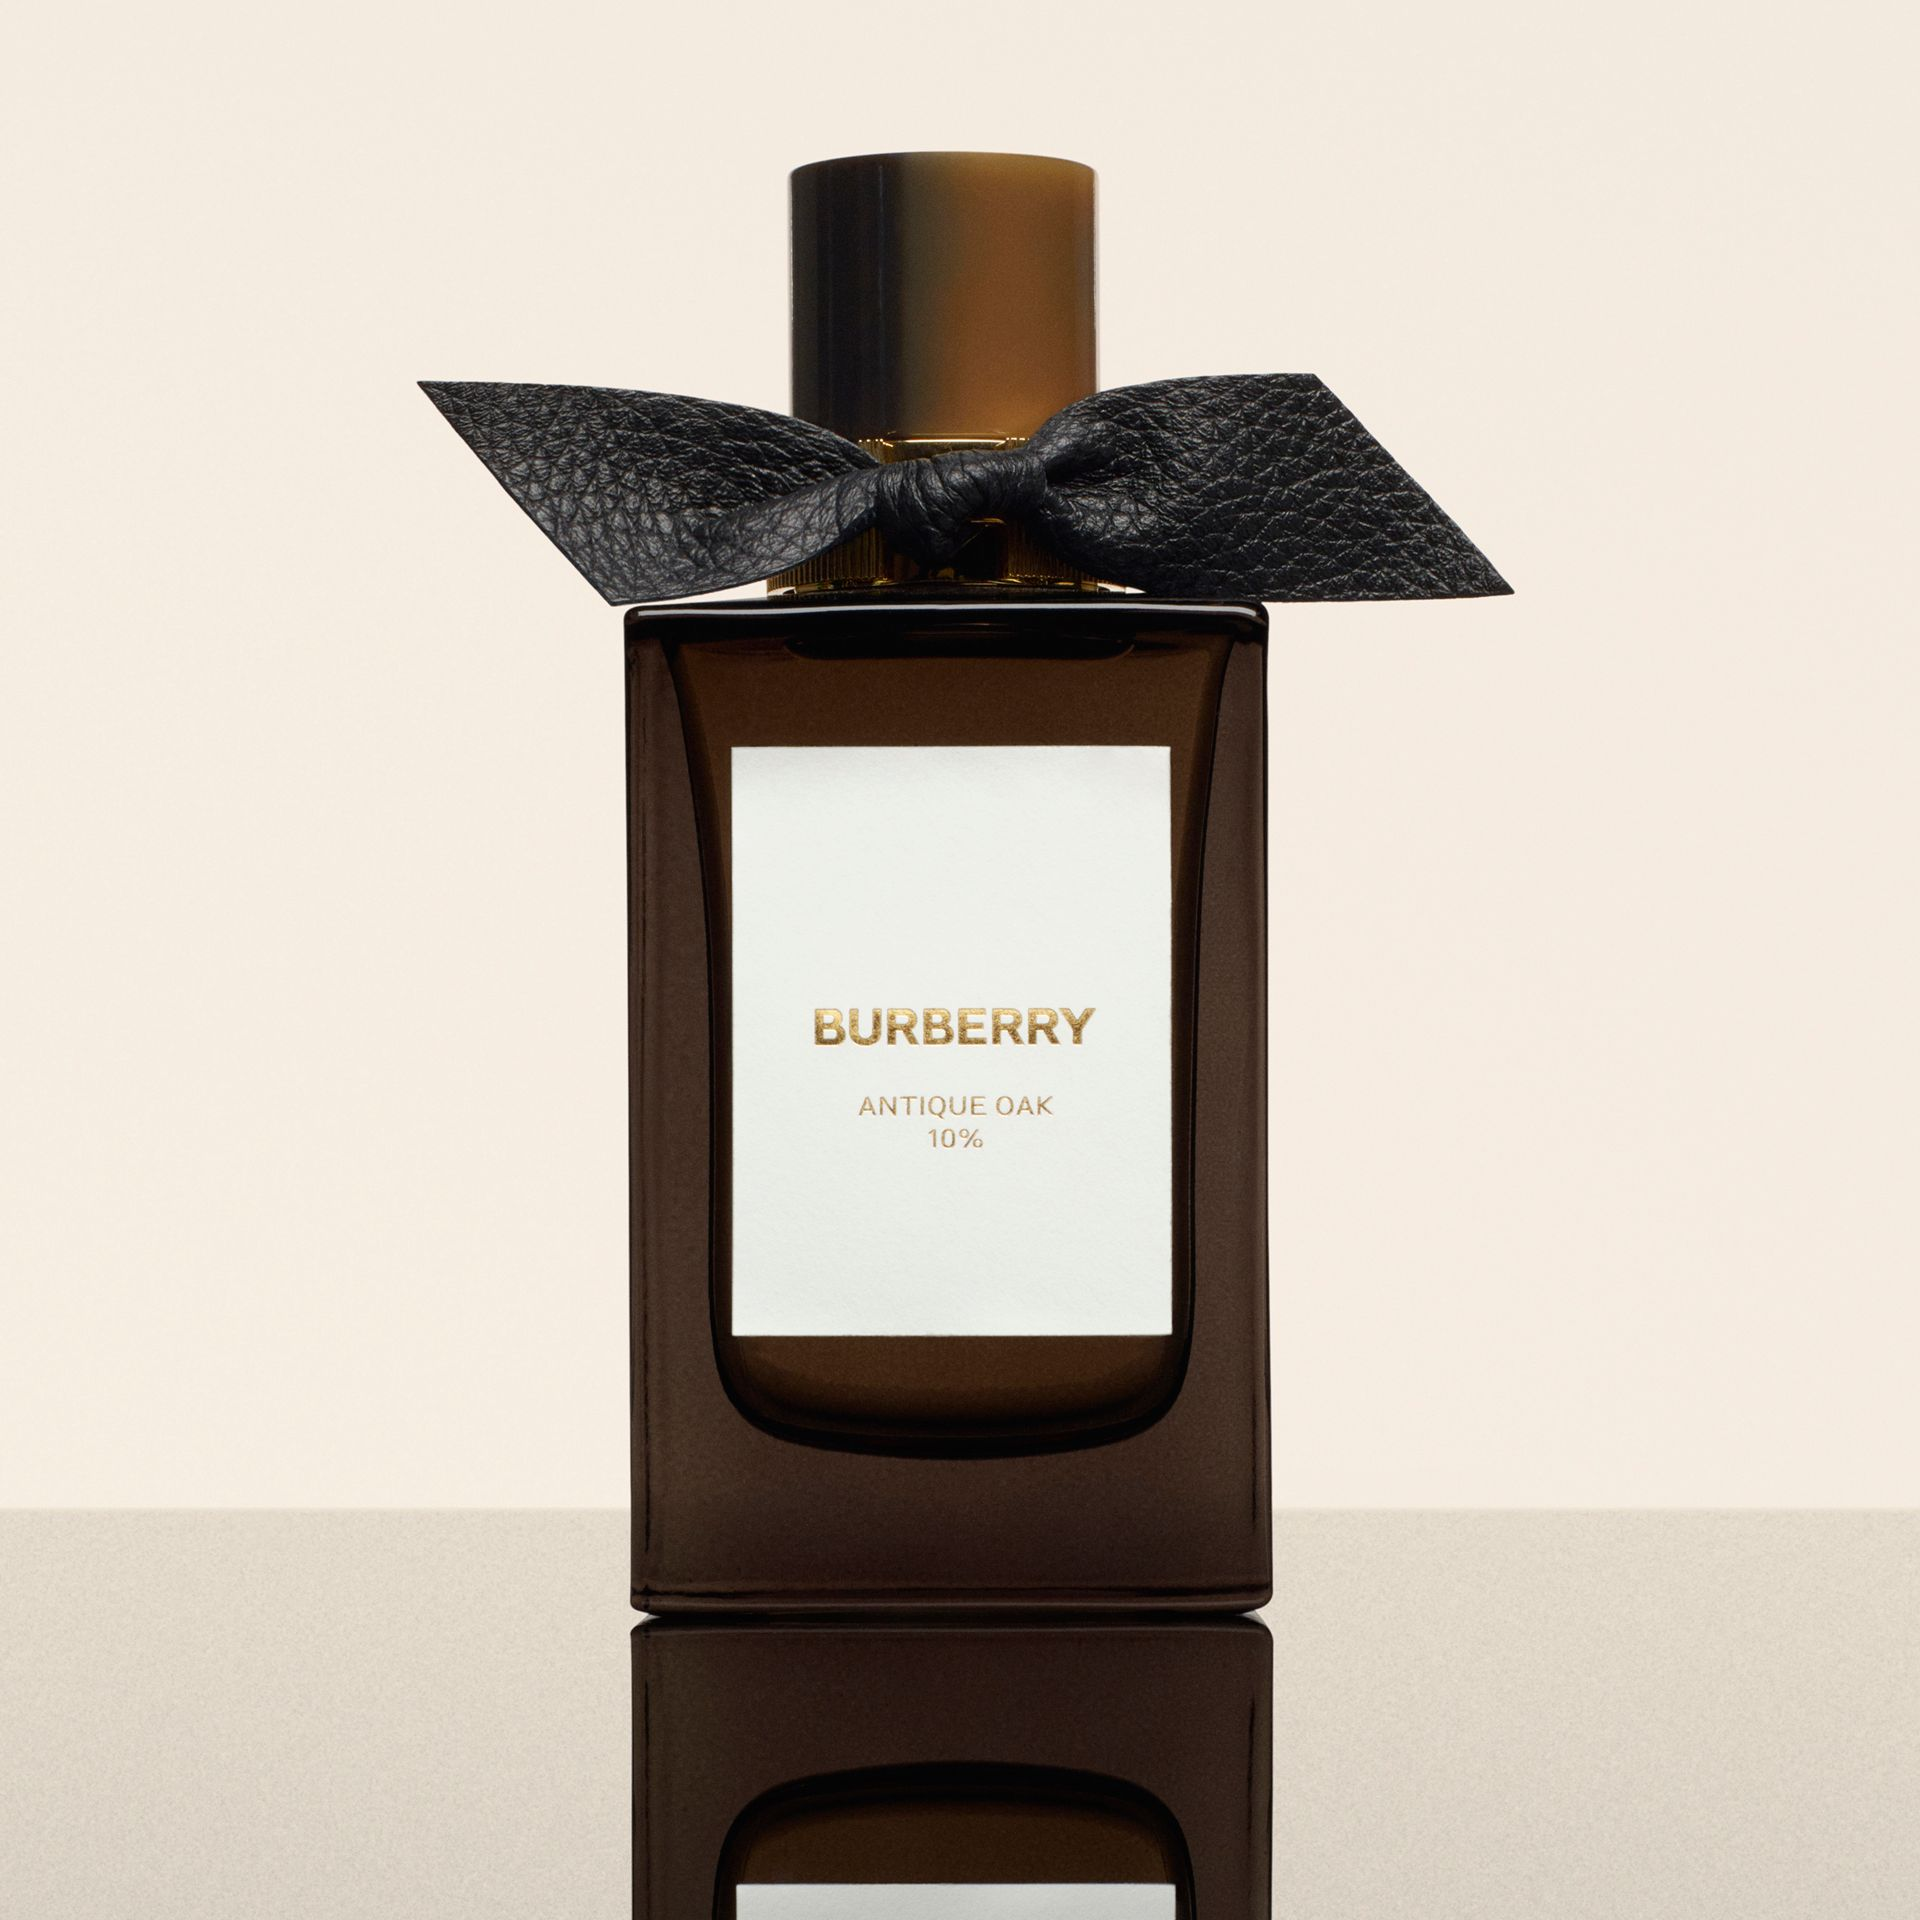 Burberry Signatures Antique Oak Eau de Parfum 100ml (100 Ml) | Burberry - galeria de imagens 1